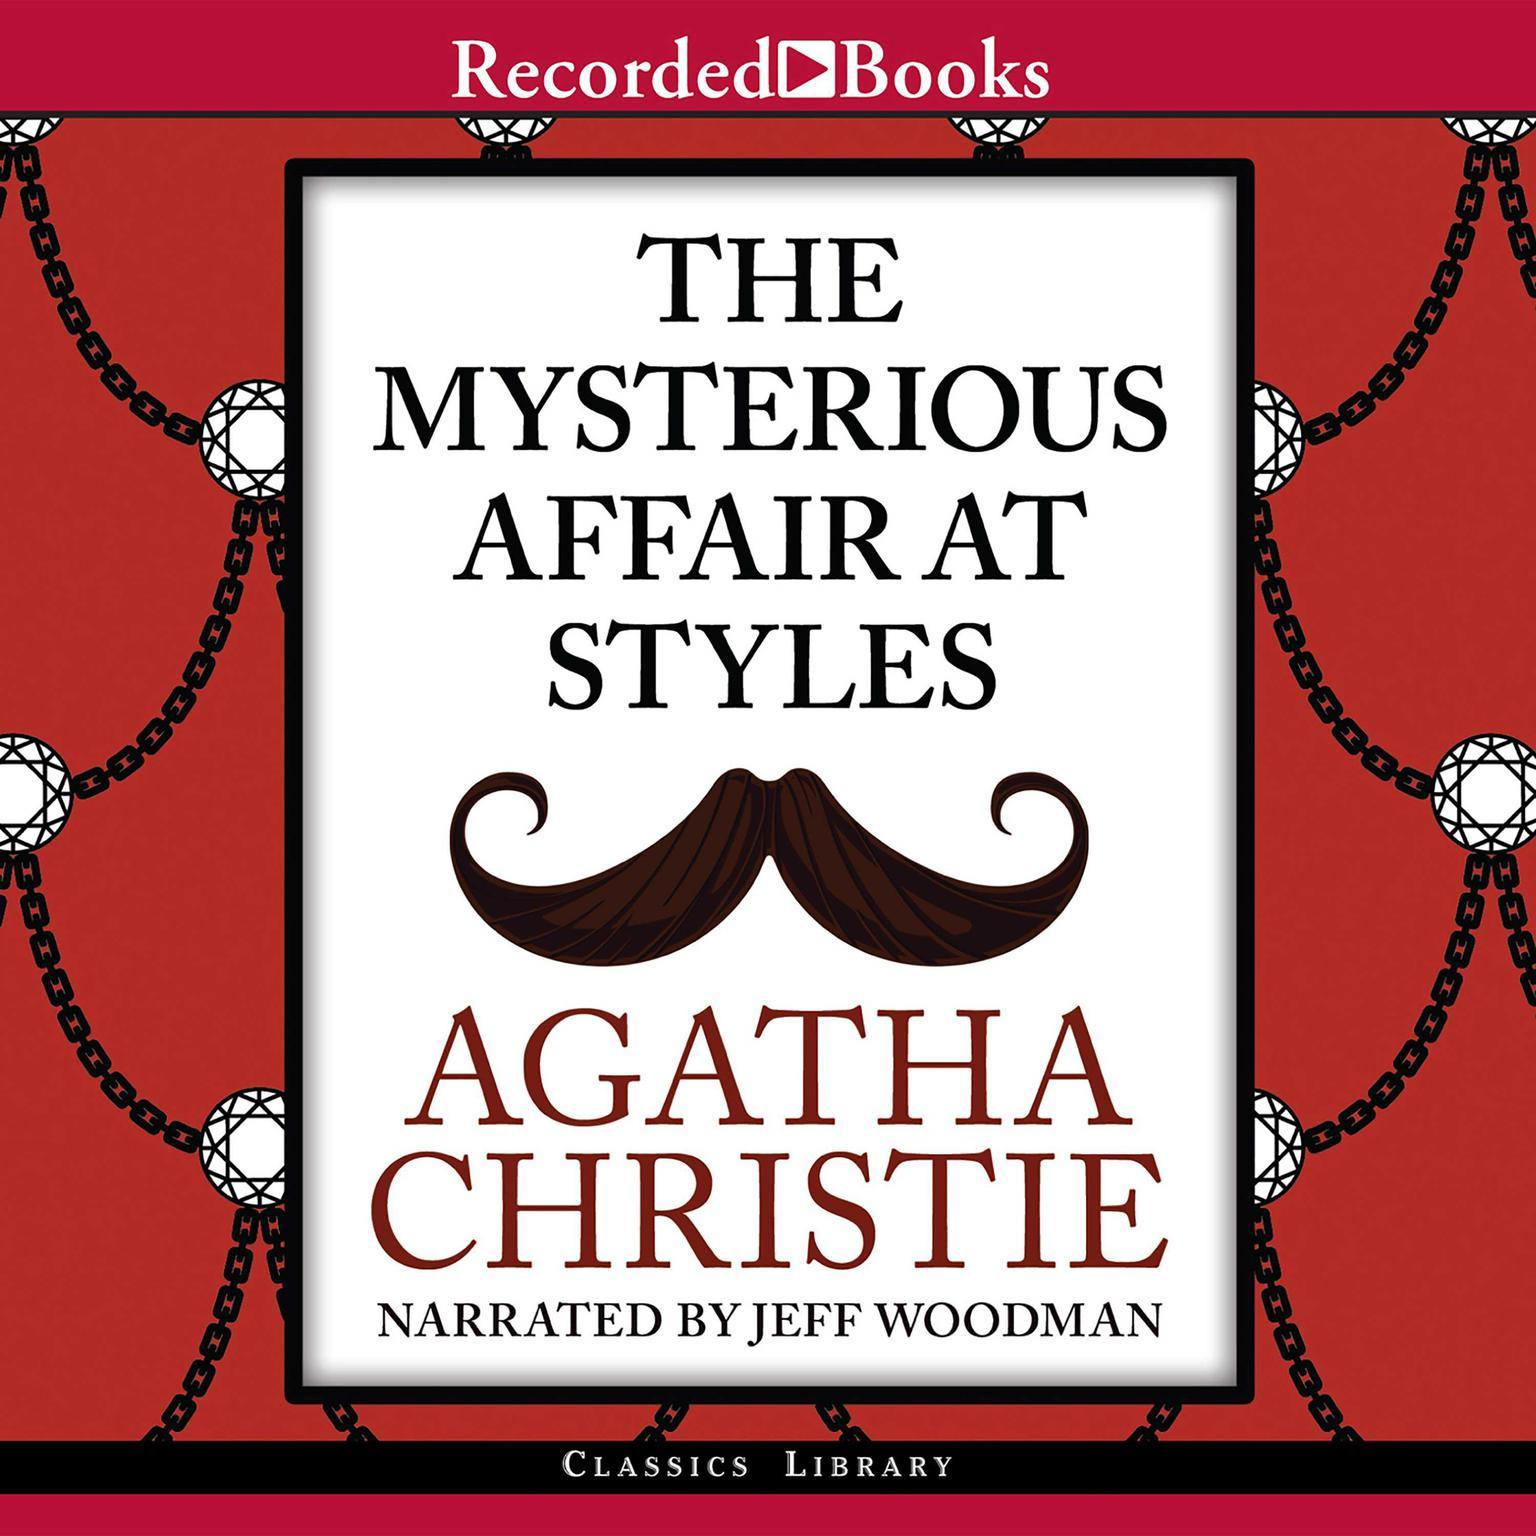 the mysterious affair at styles essay E-book exclusive extras: christie biographer charles osborne's essay on the mysterious affair at styles.